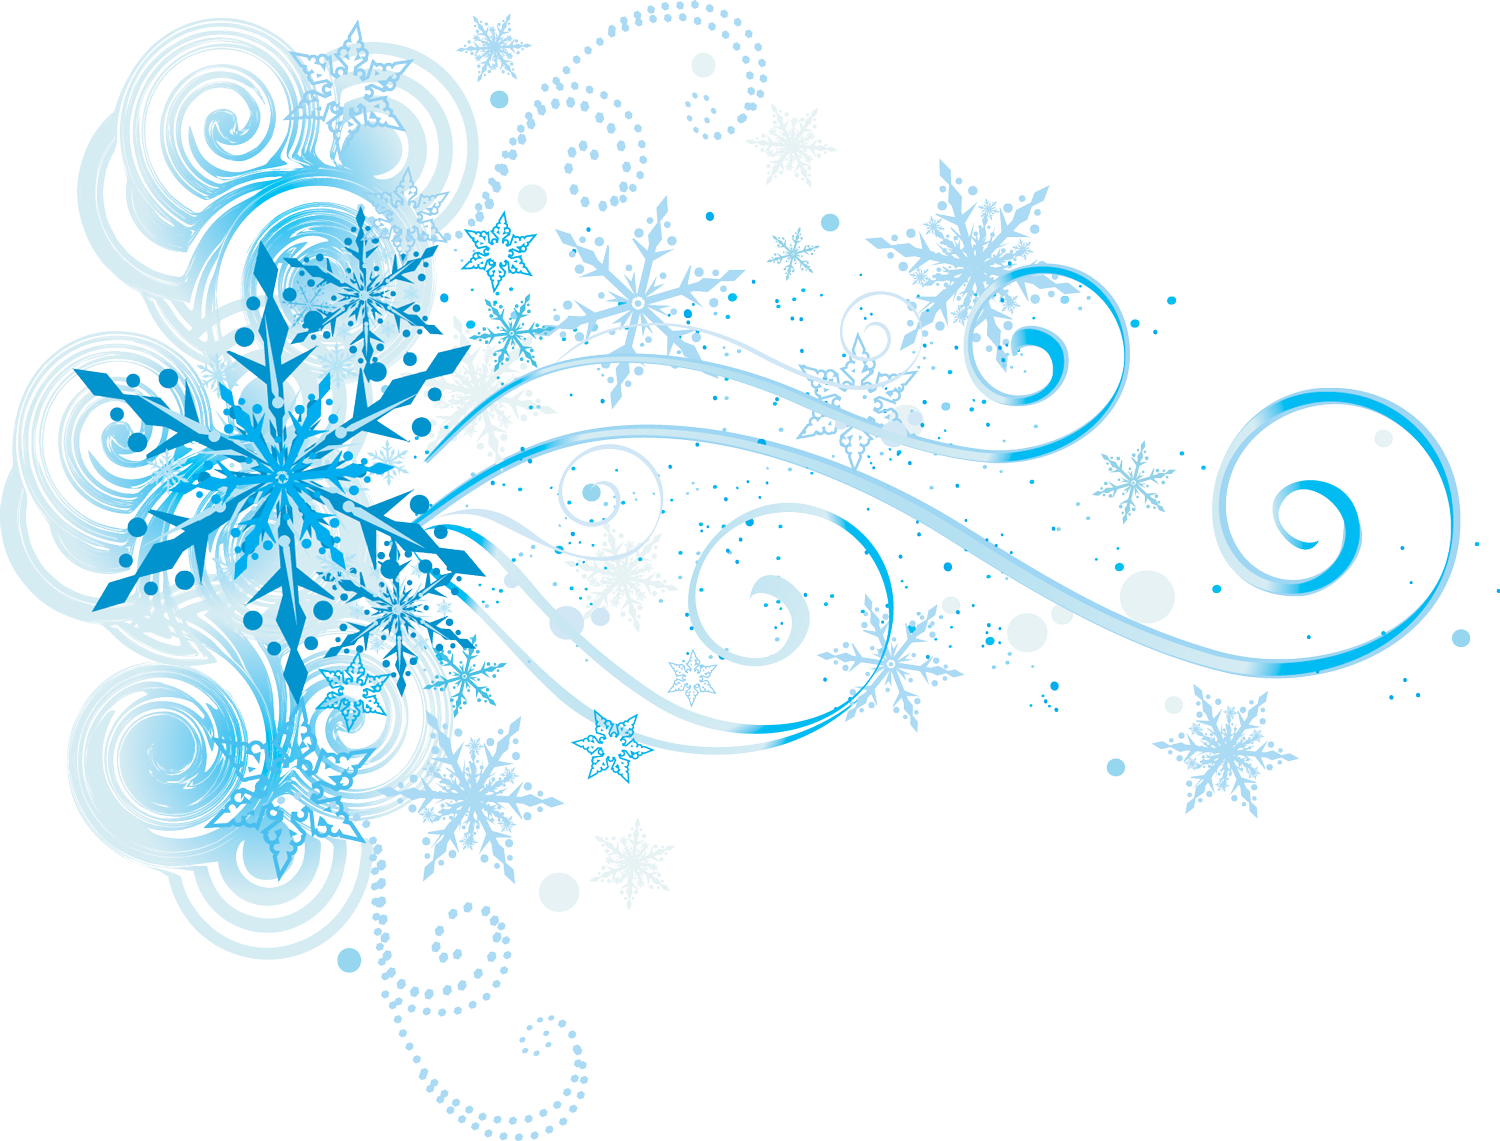 Snowflake black white corner clipart banner free library wrap around the shoulder with ribbons flowing down the arm ... banner free library